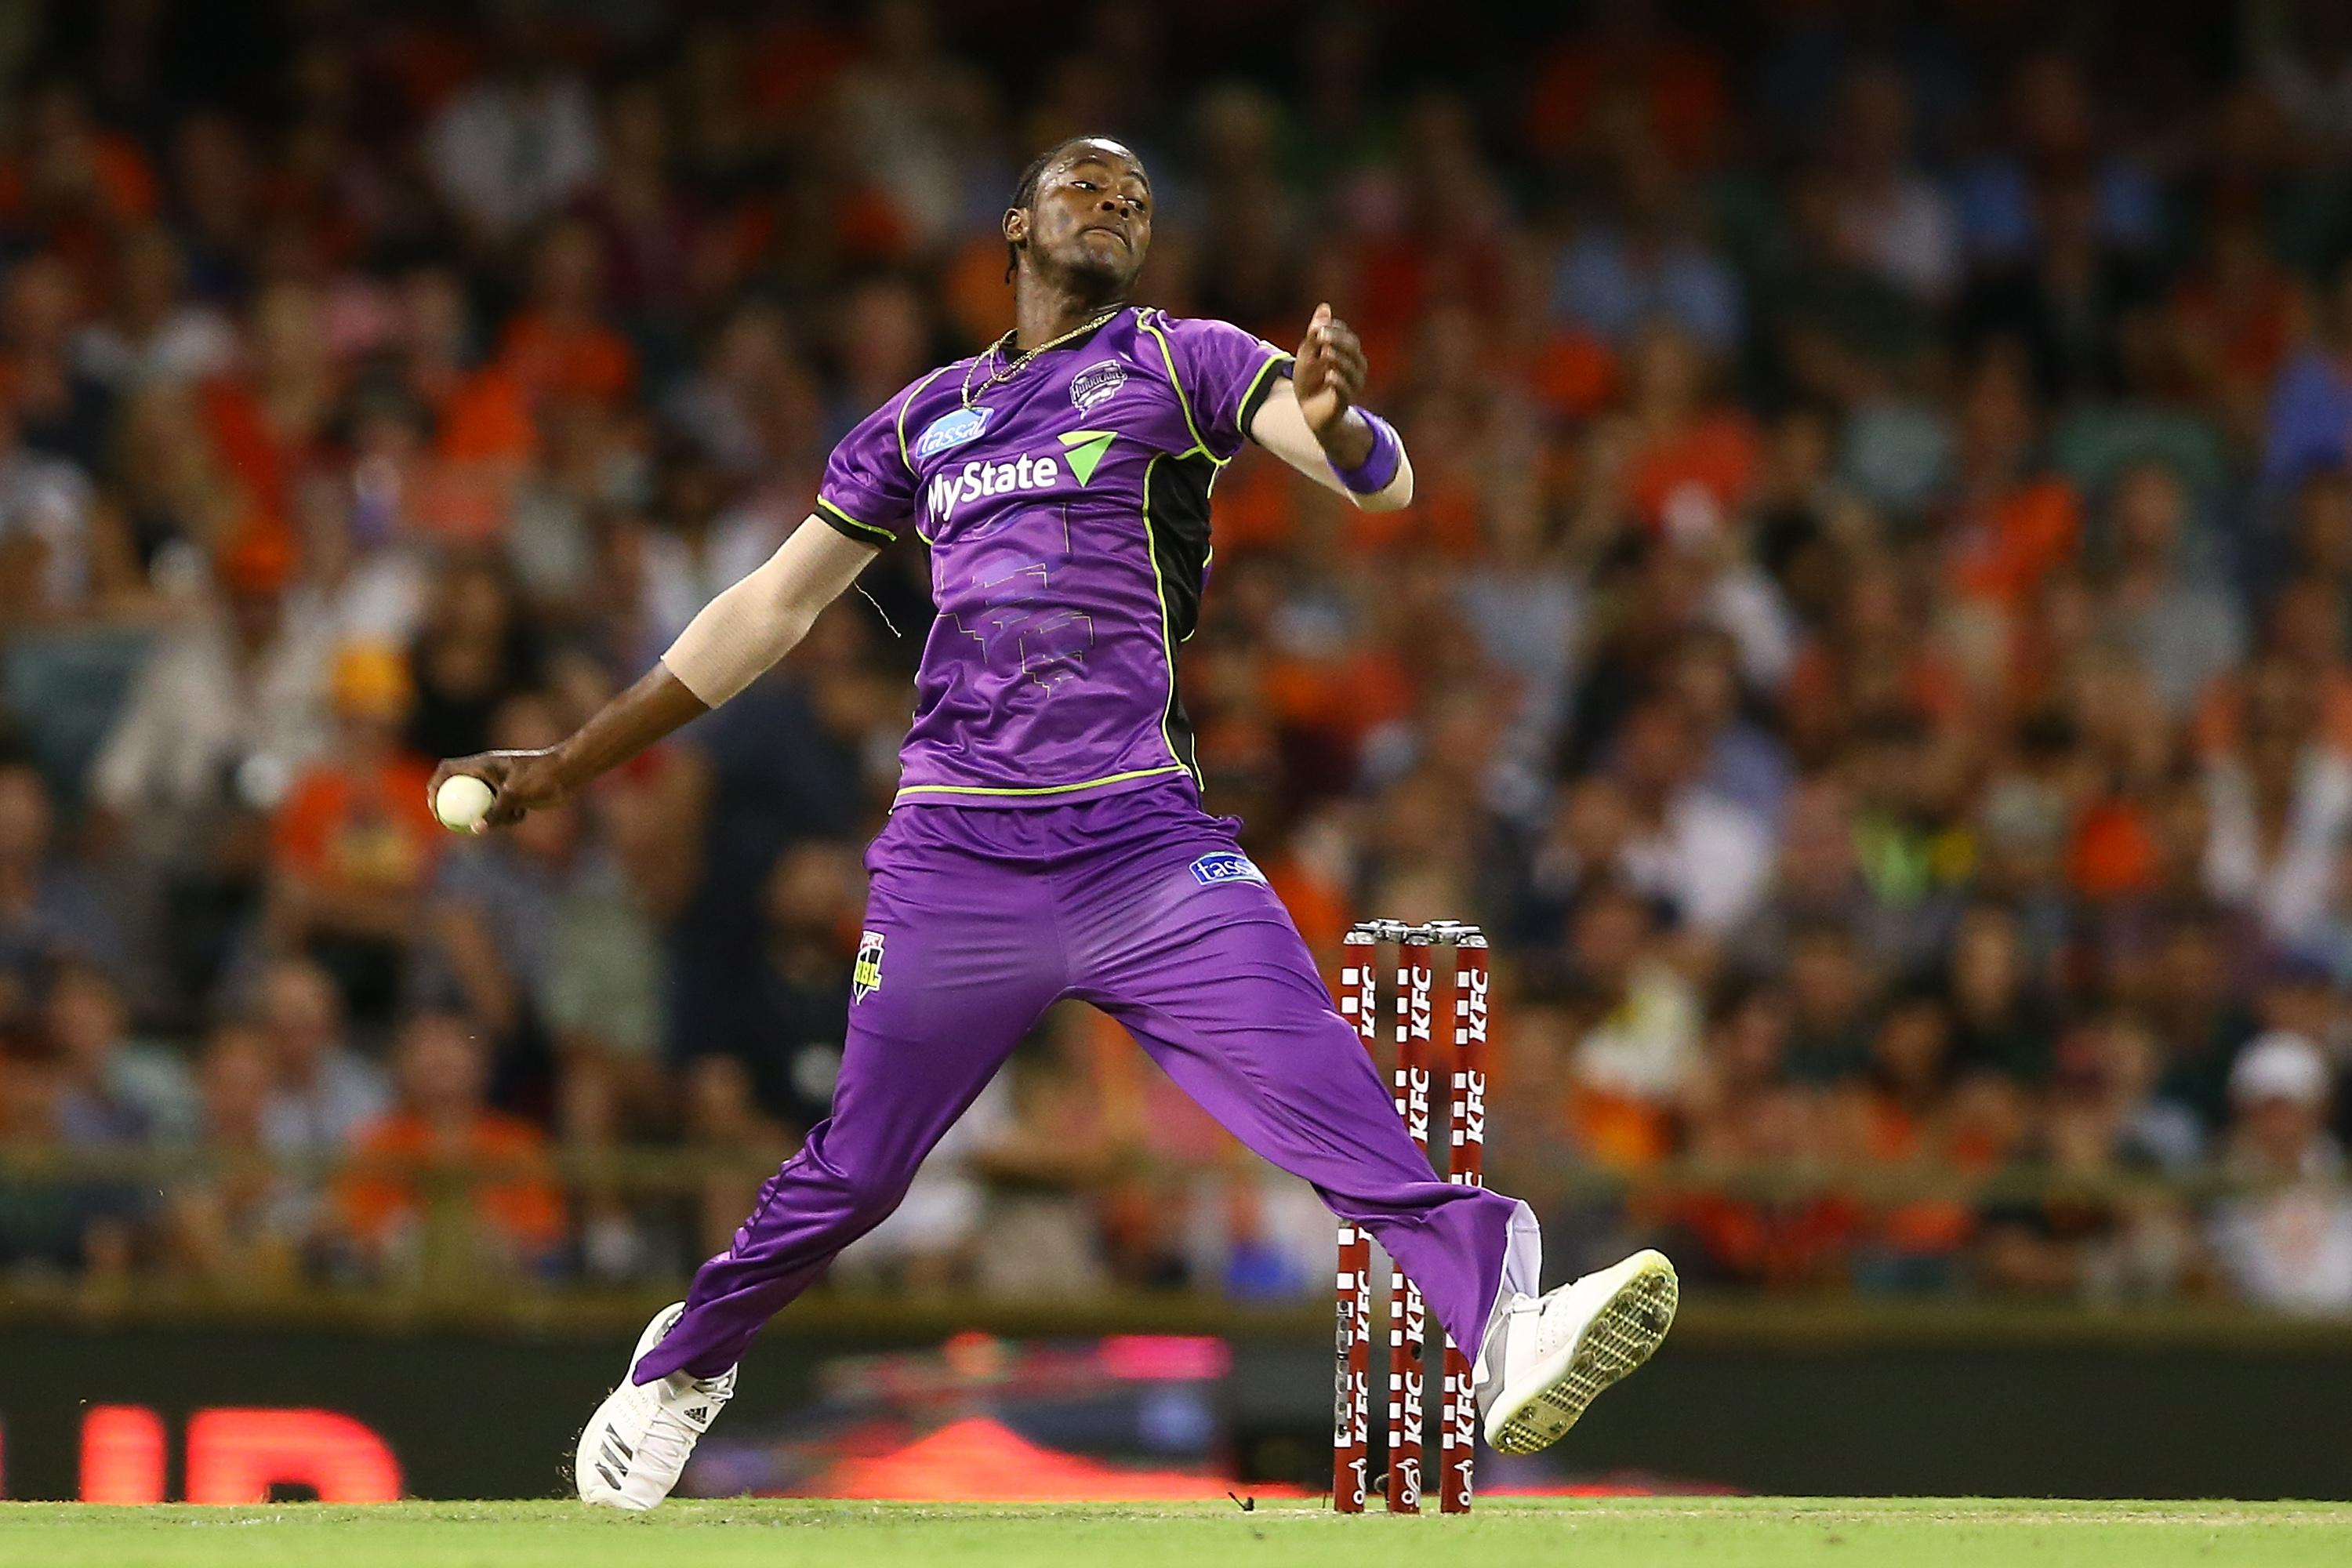 Archers most eye-catching display's have come for the Hobart Hurricanes in the Big Bash